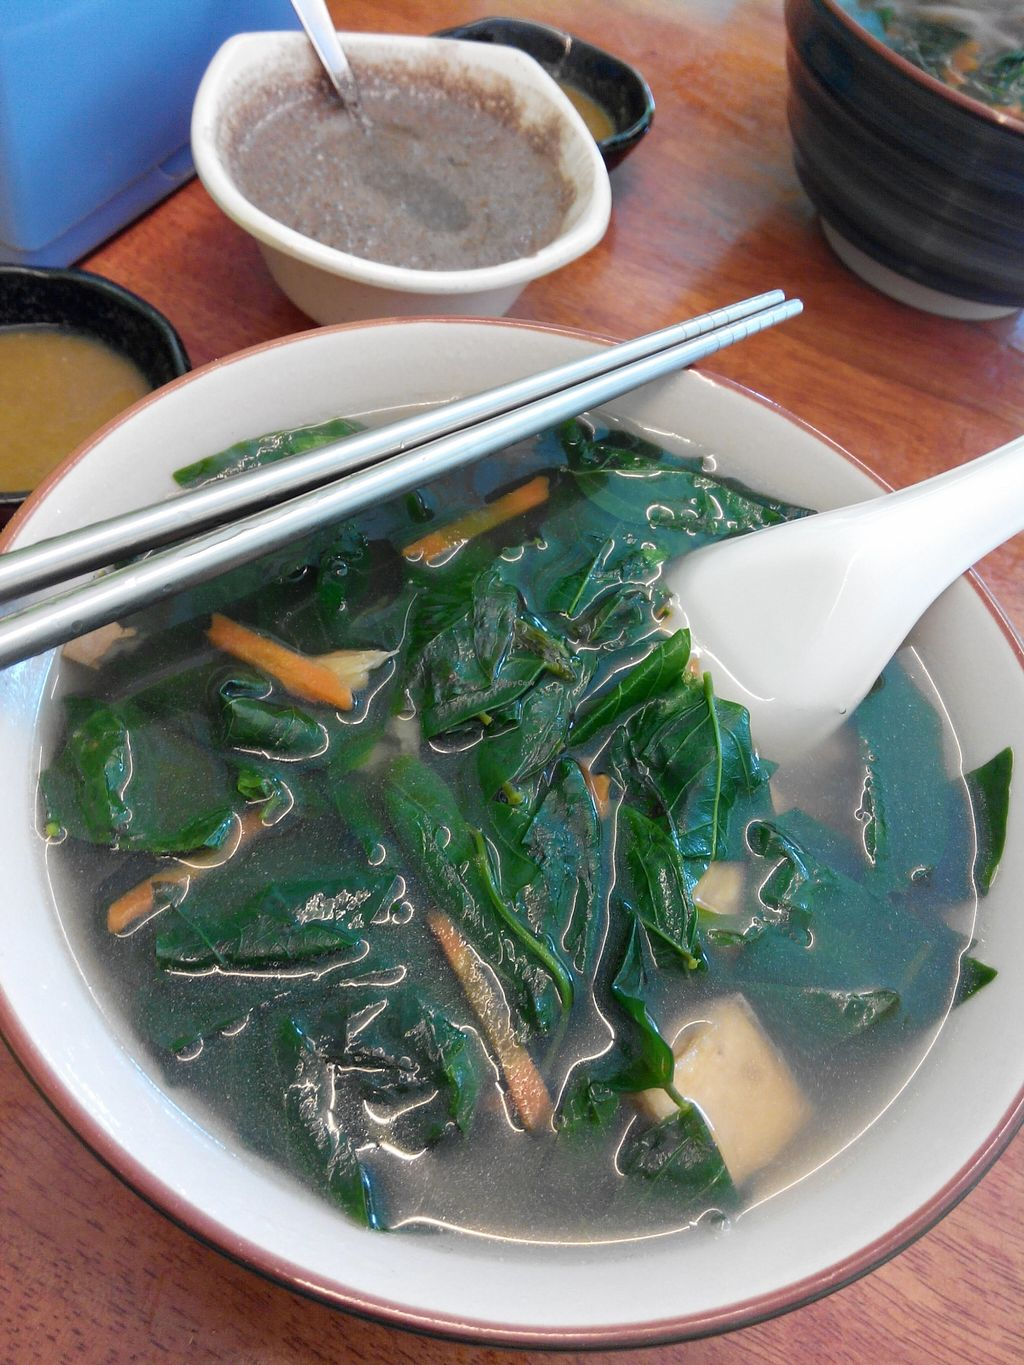 """Photo of New Giant Bowl Vegetarian Restaurant  by <a href=""""/members/profile/samsunggalaxy"""">samsunggalaxy</a> <br/>fresh vegetarian <br/> September 15, 2015  - <a href='/contact/abuse/image/18975/117912'>Report</a>"""